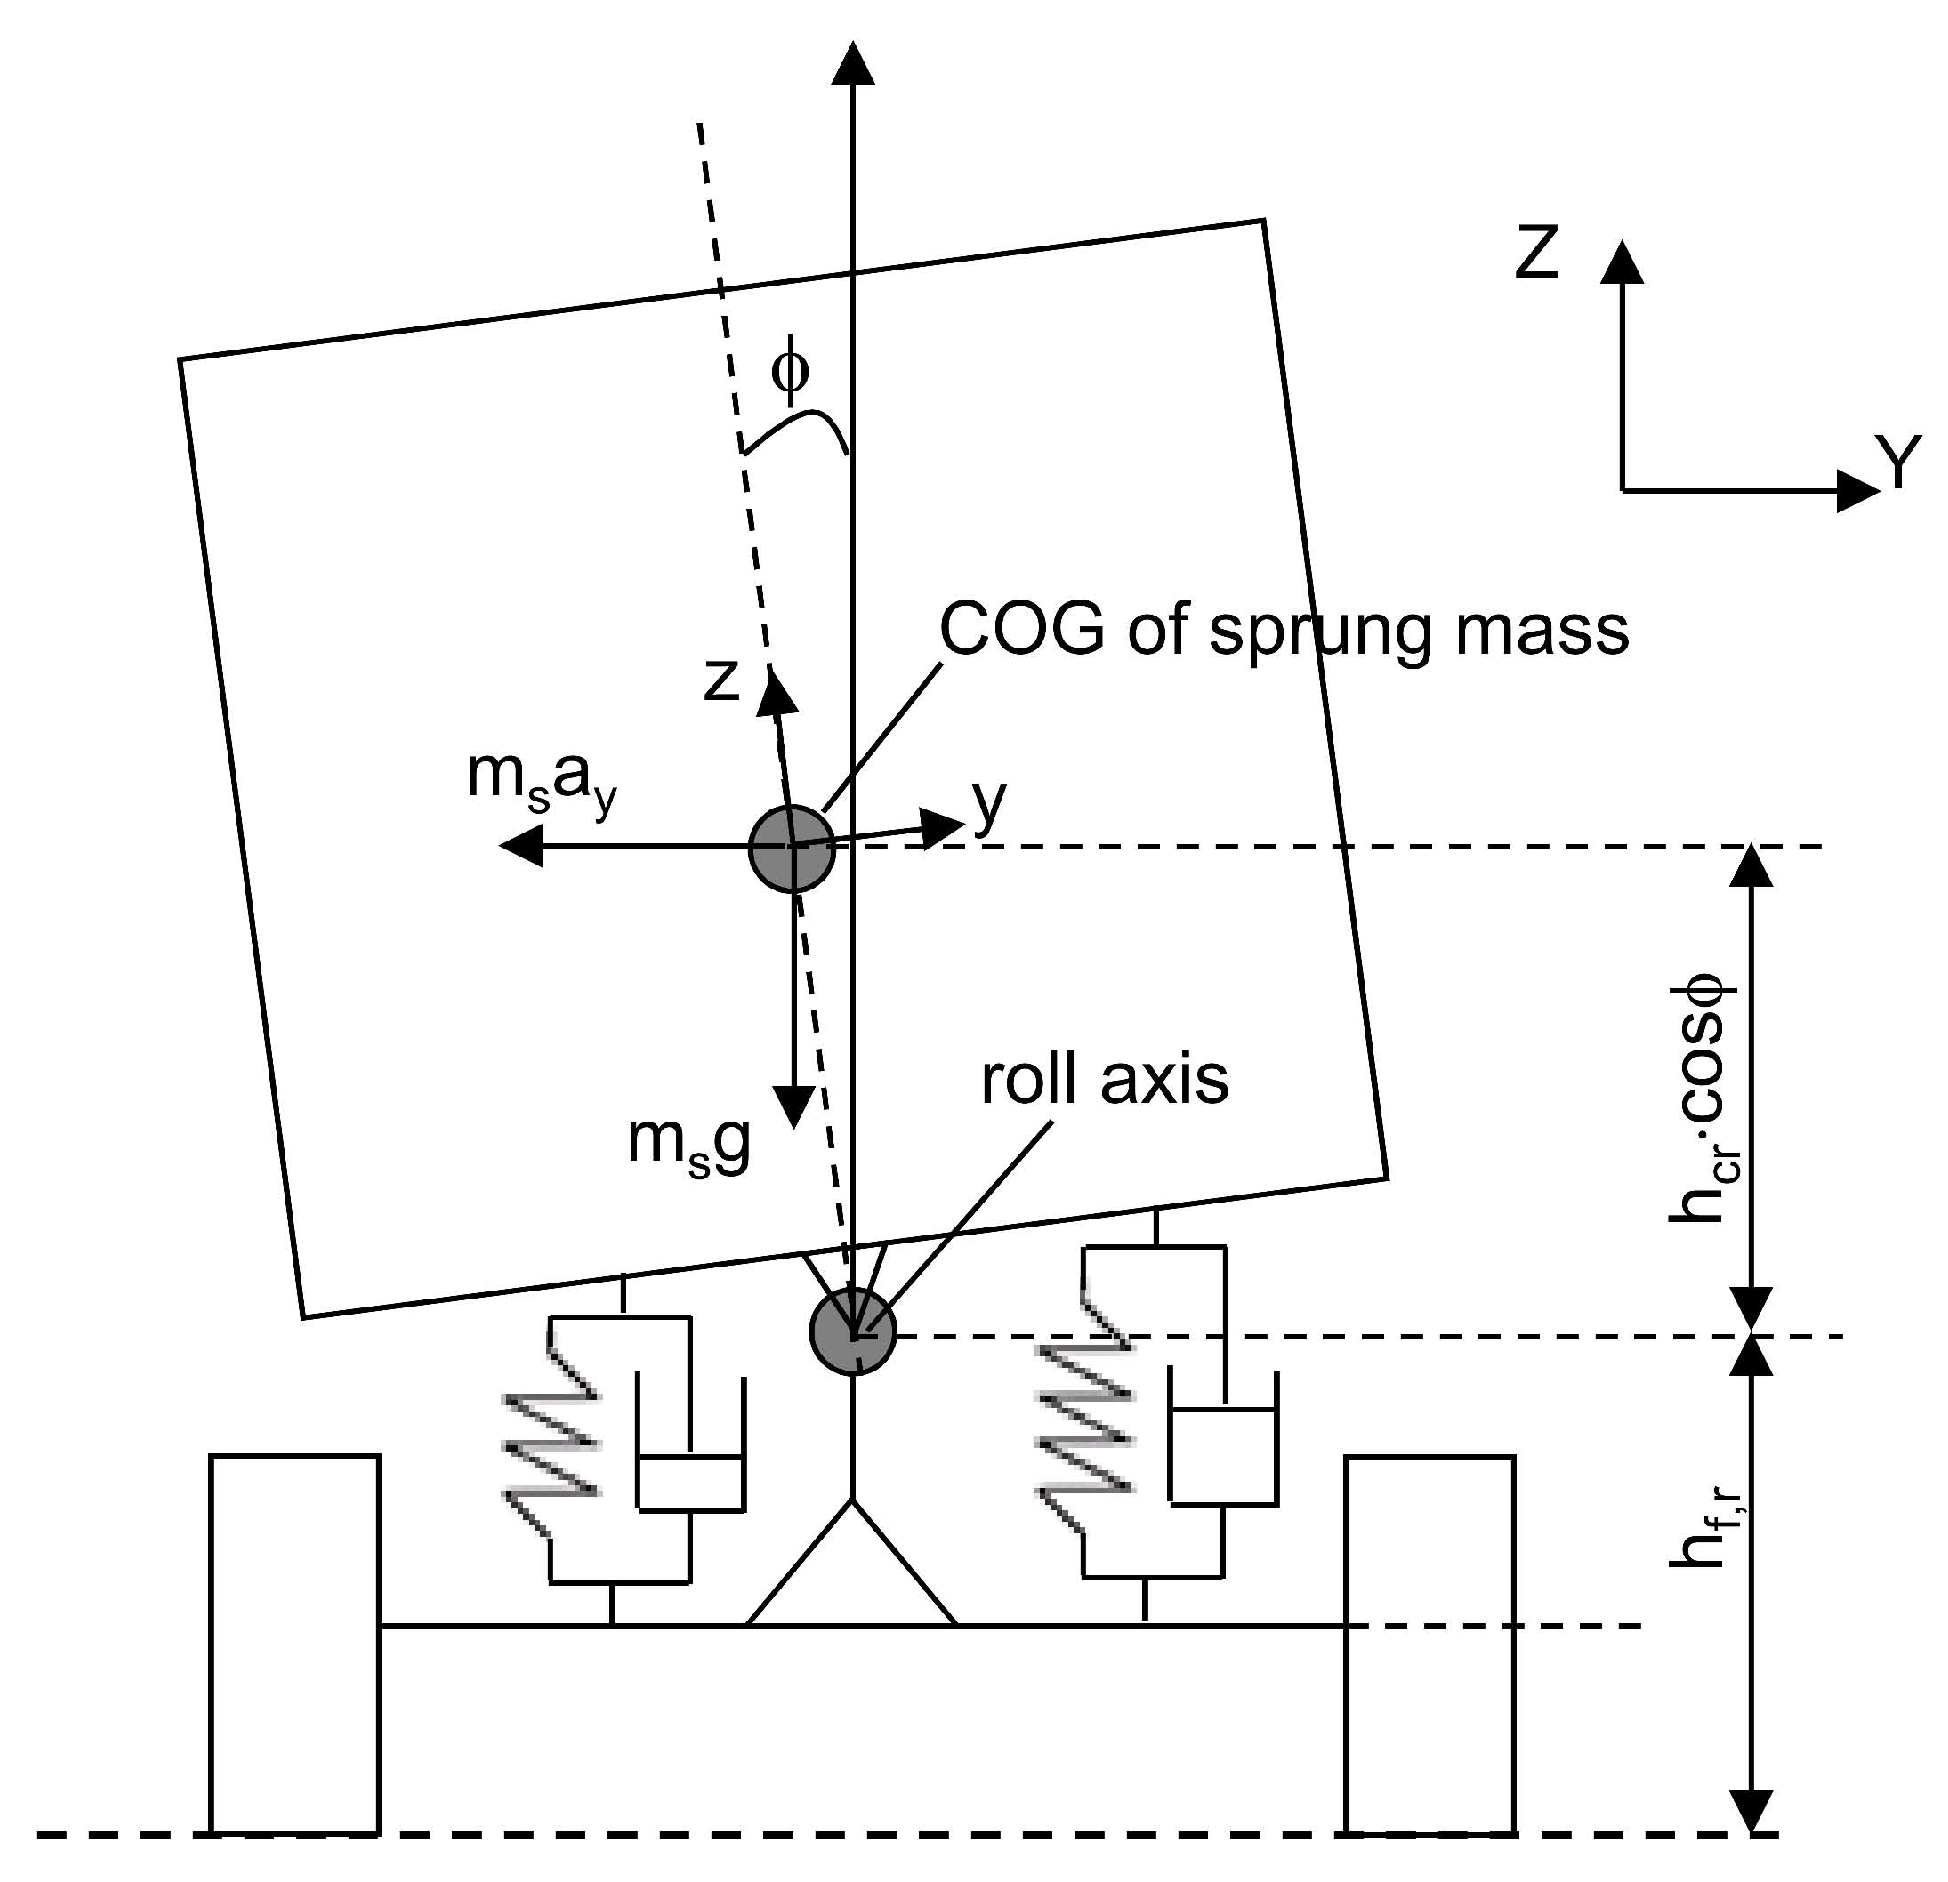 Motion Sensor Schematic